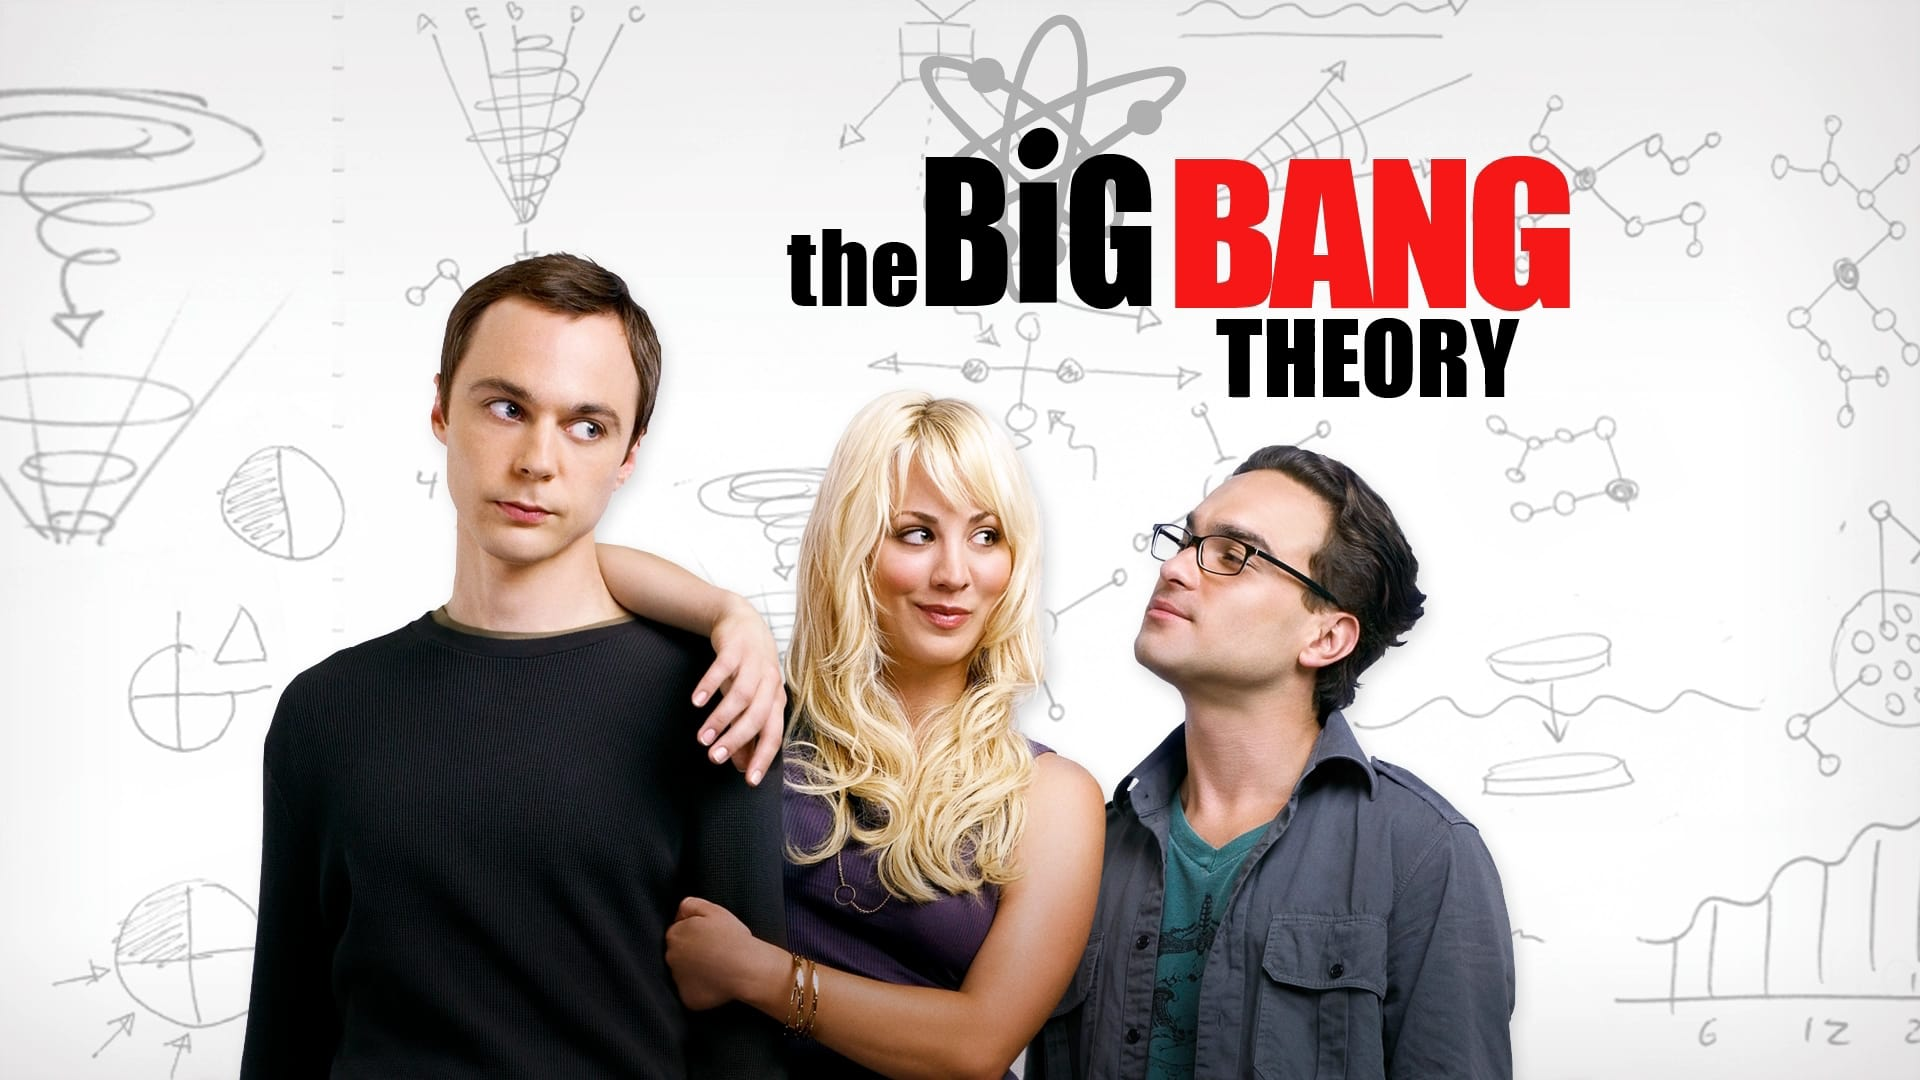 Big Bang Theory Bettwäsche The Big Bang Theory 2007 Tv Show Chuck Lorre Waatch Co